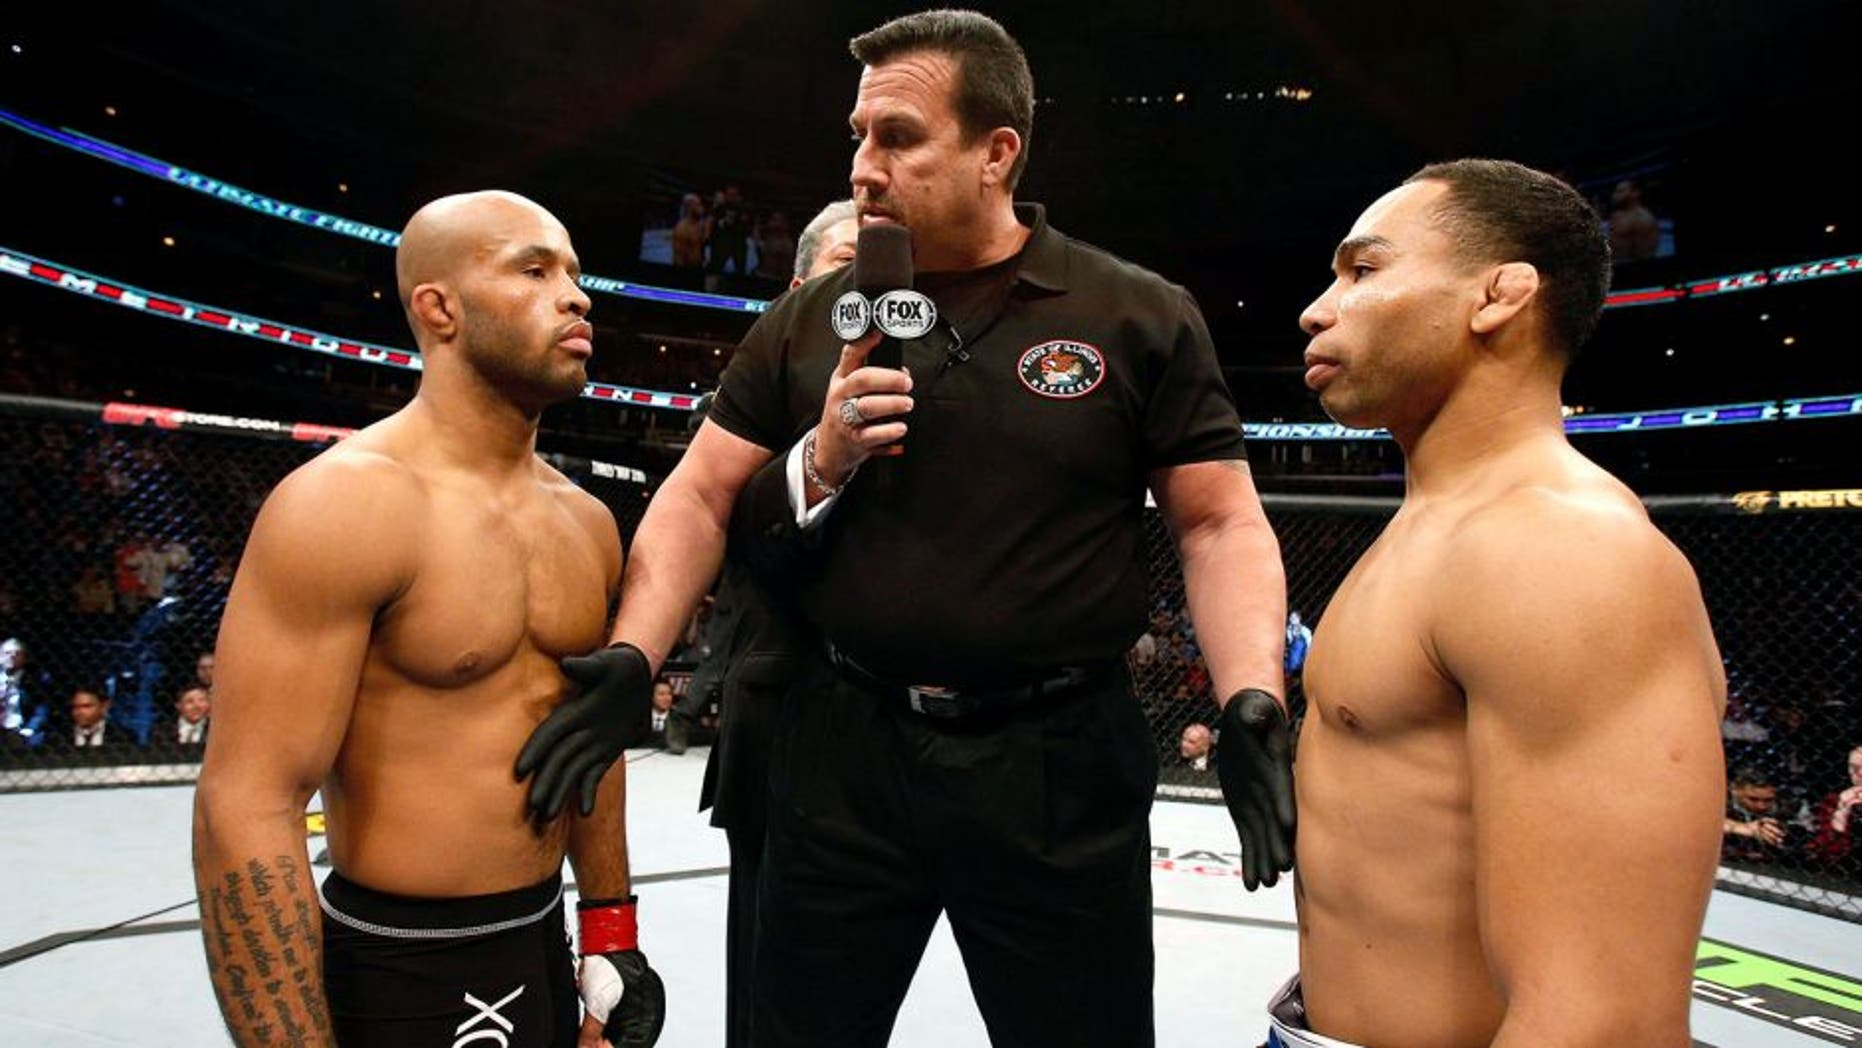 CHICAGO, IL - JANUARY 26: John Dodson (R) face off with Demetrious Johnson (L) during thier Flyweight Championship Bout part of UFC on FOX at United Center on January 26, 2013 in Chicago, Illinois. (Photo by Josh Hedges/Zuffa LLC/Zuffa LLC Via Getty Images)